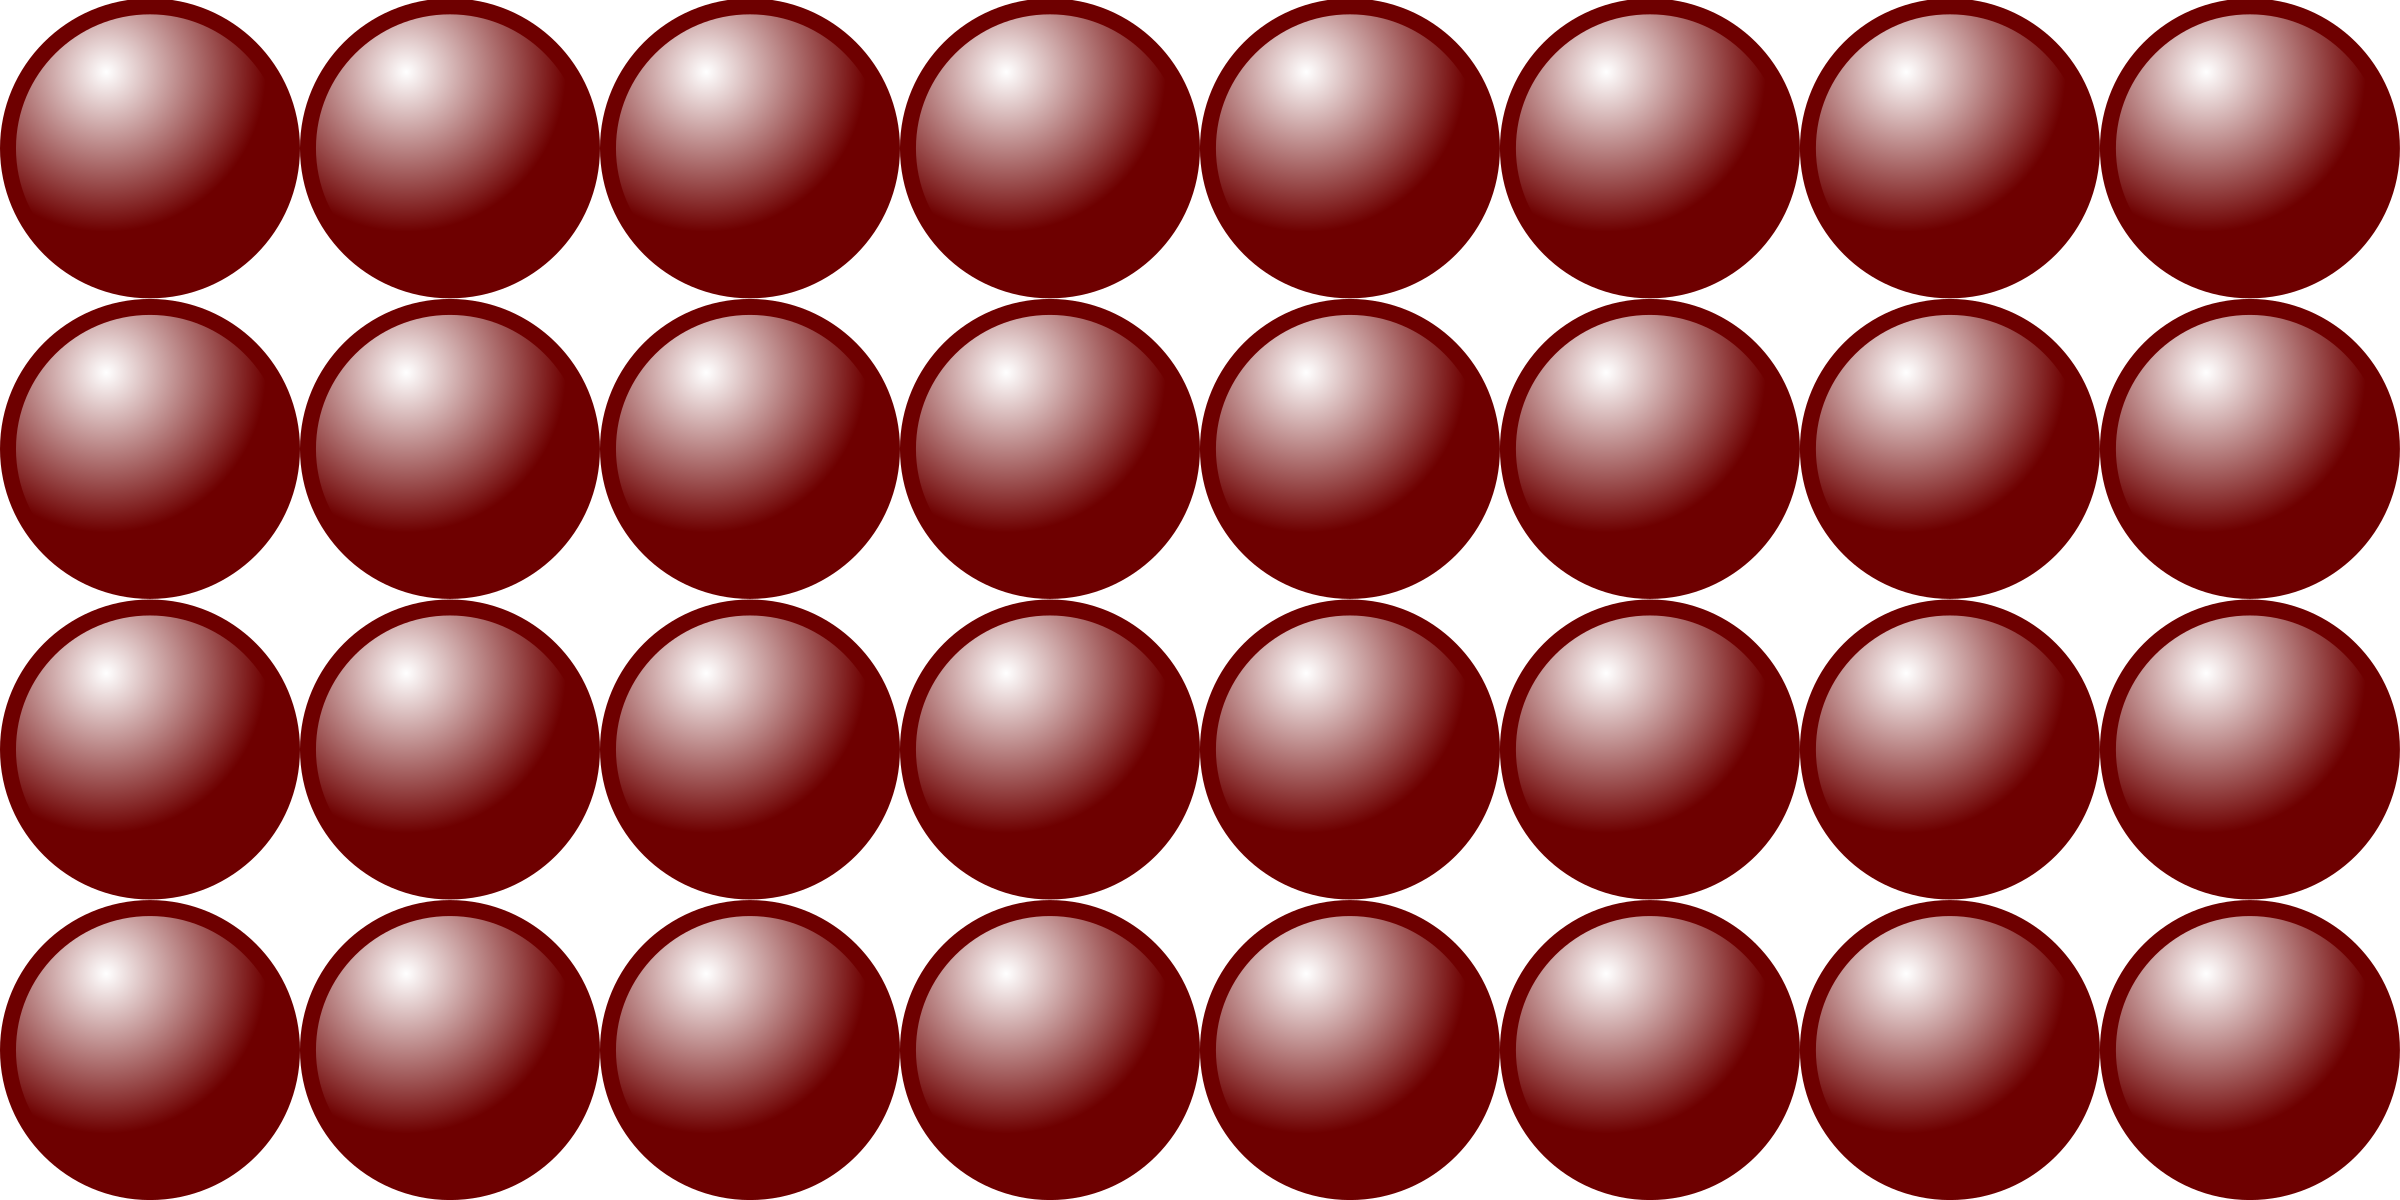 Beads quantitative picture for multiplication 4x8 by frankes